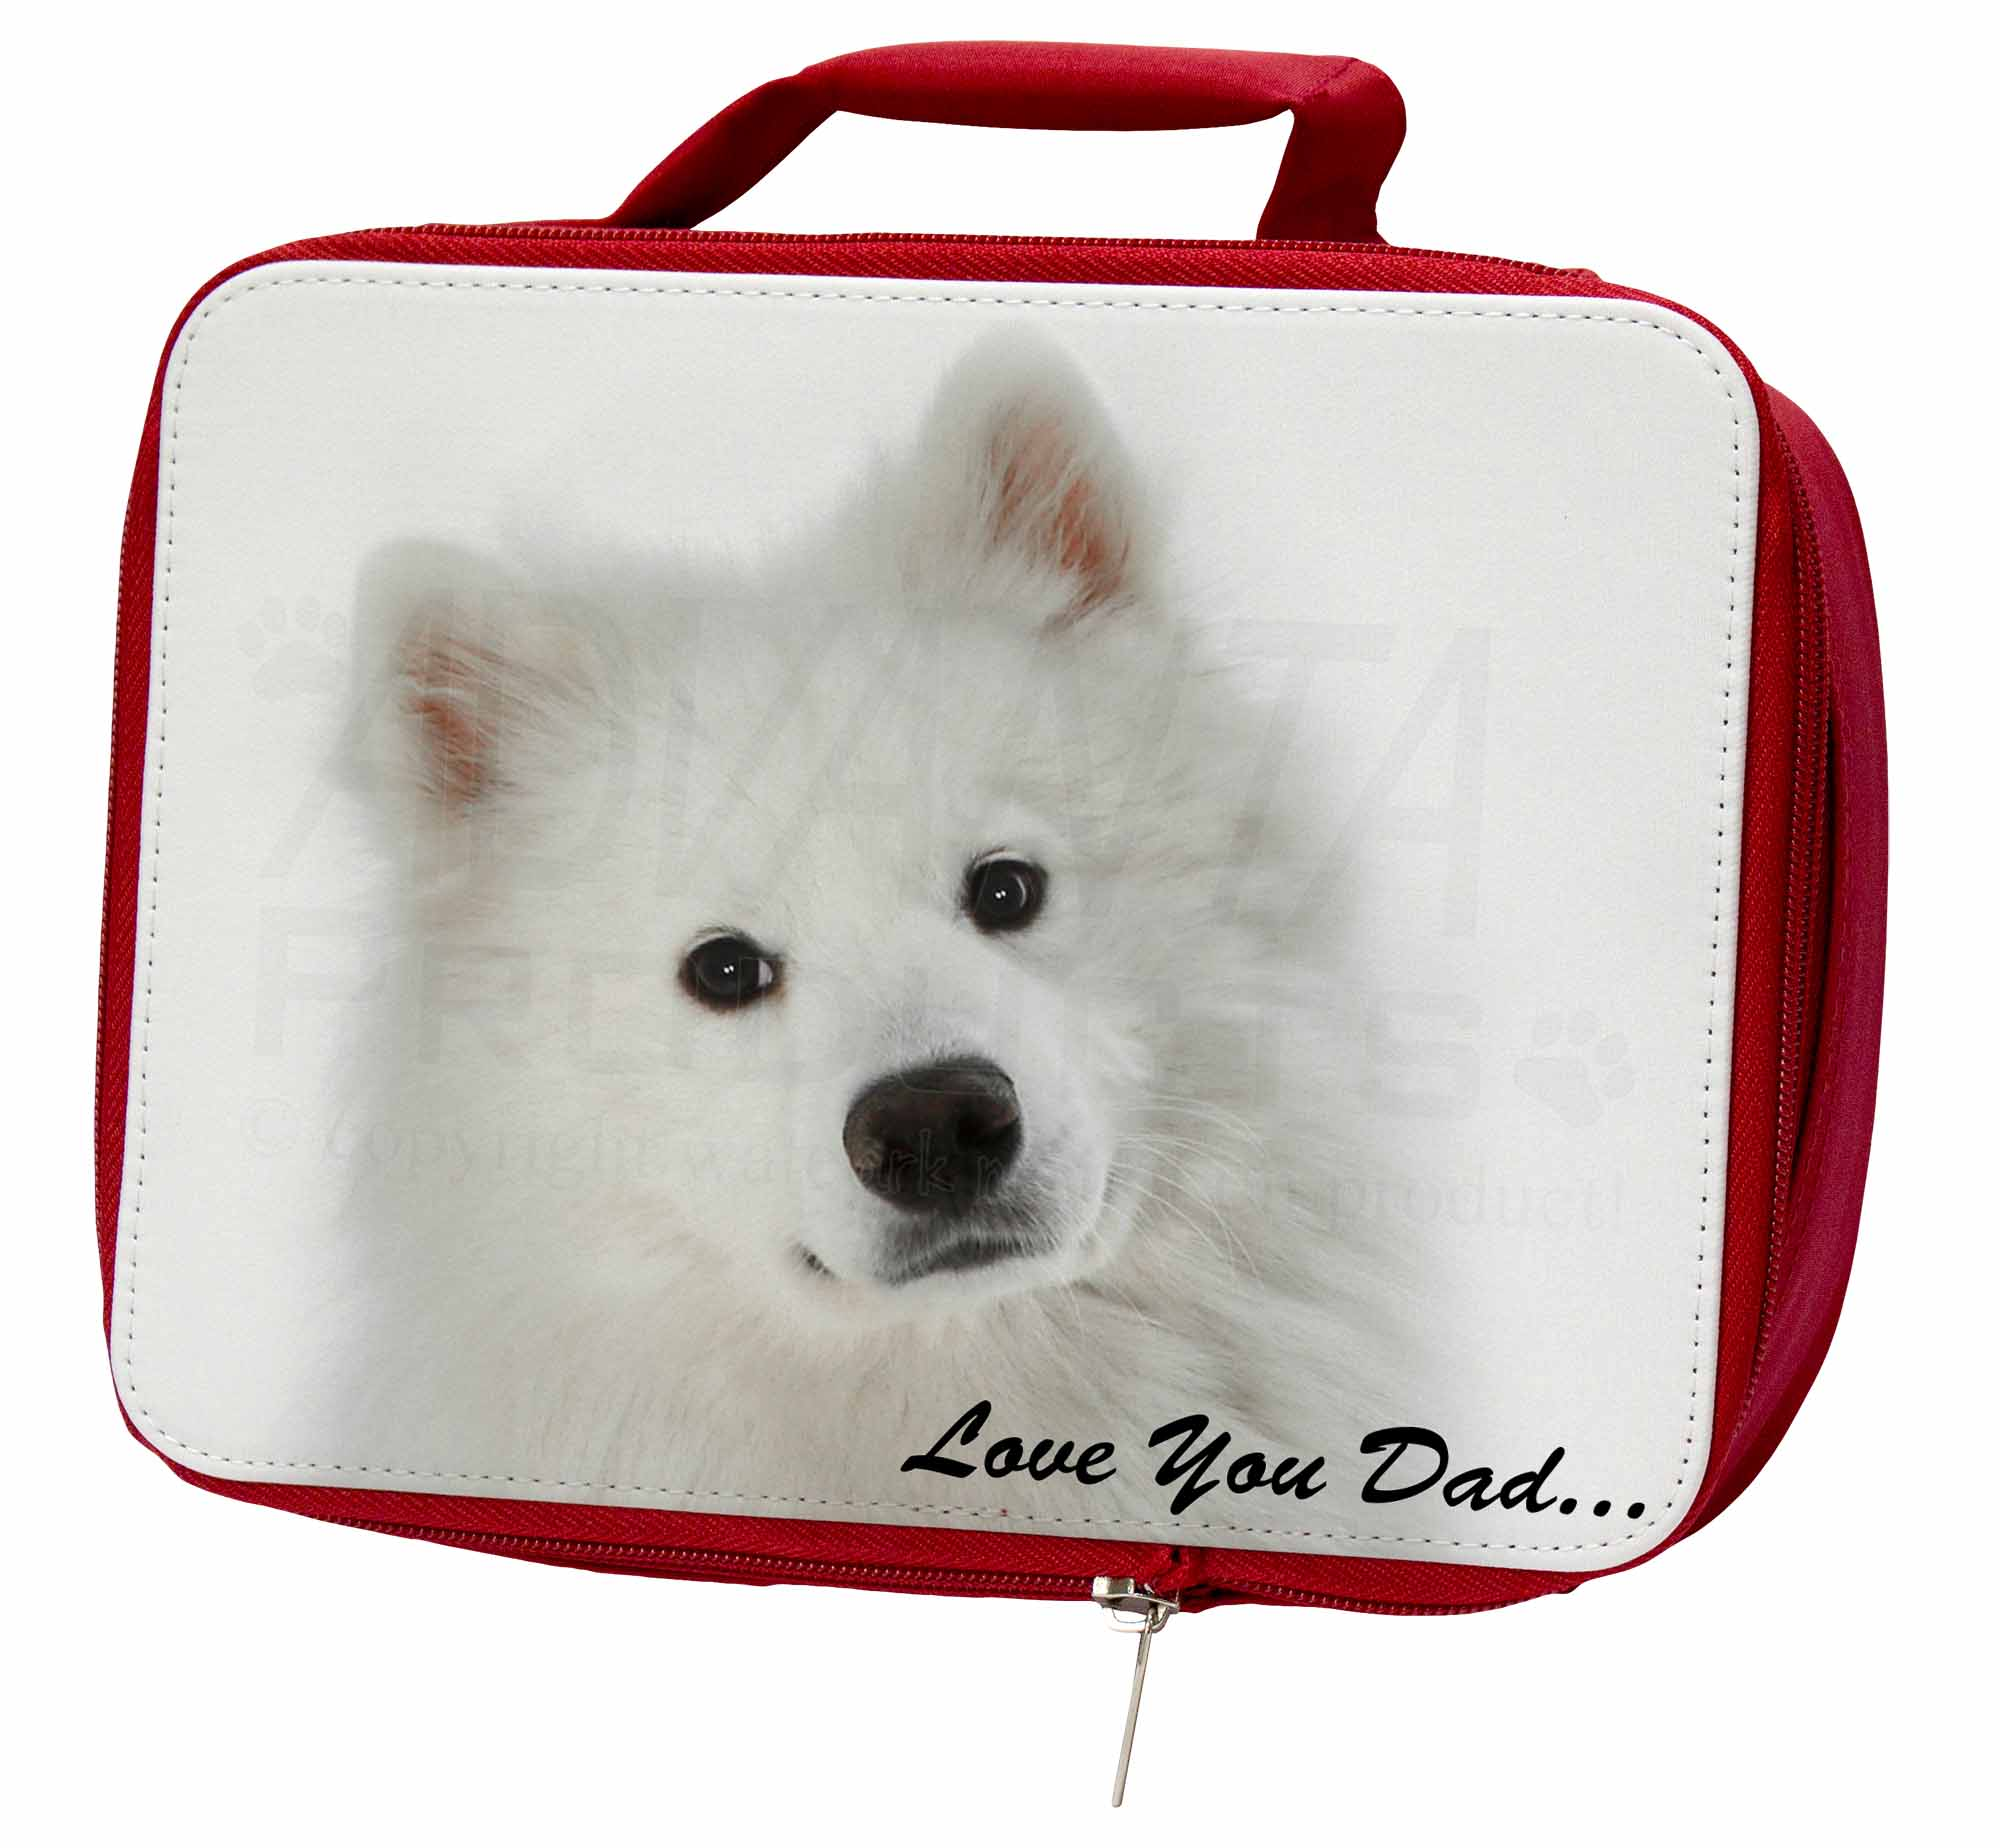 Samoyed 'Love You Dad' Sentiment Insulated Red School Lunch Box/Picn, DAD-116LBR